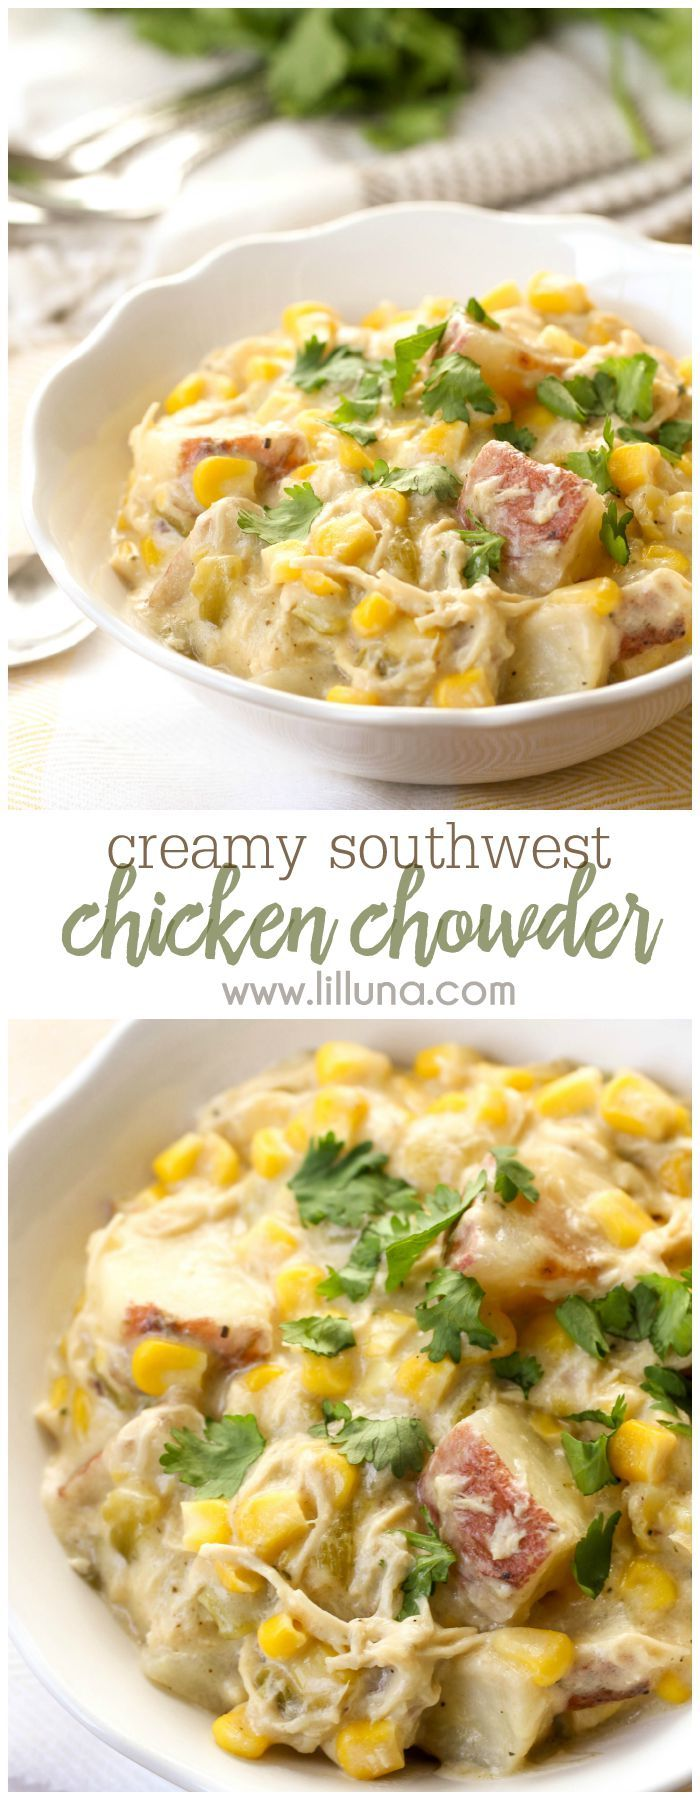 Super hearty and delicious Southwest Chicken Chowder recipe. It's so easy to make and is so full of flavor - the whole fam loved it!! Get the recipe on { lilluna.com }